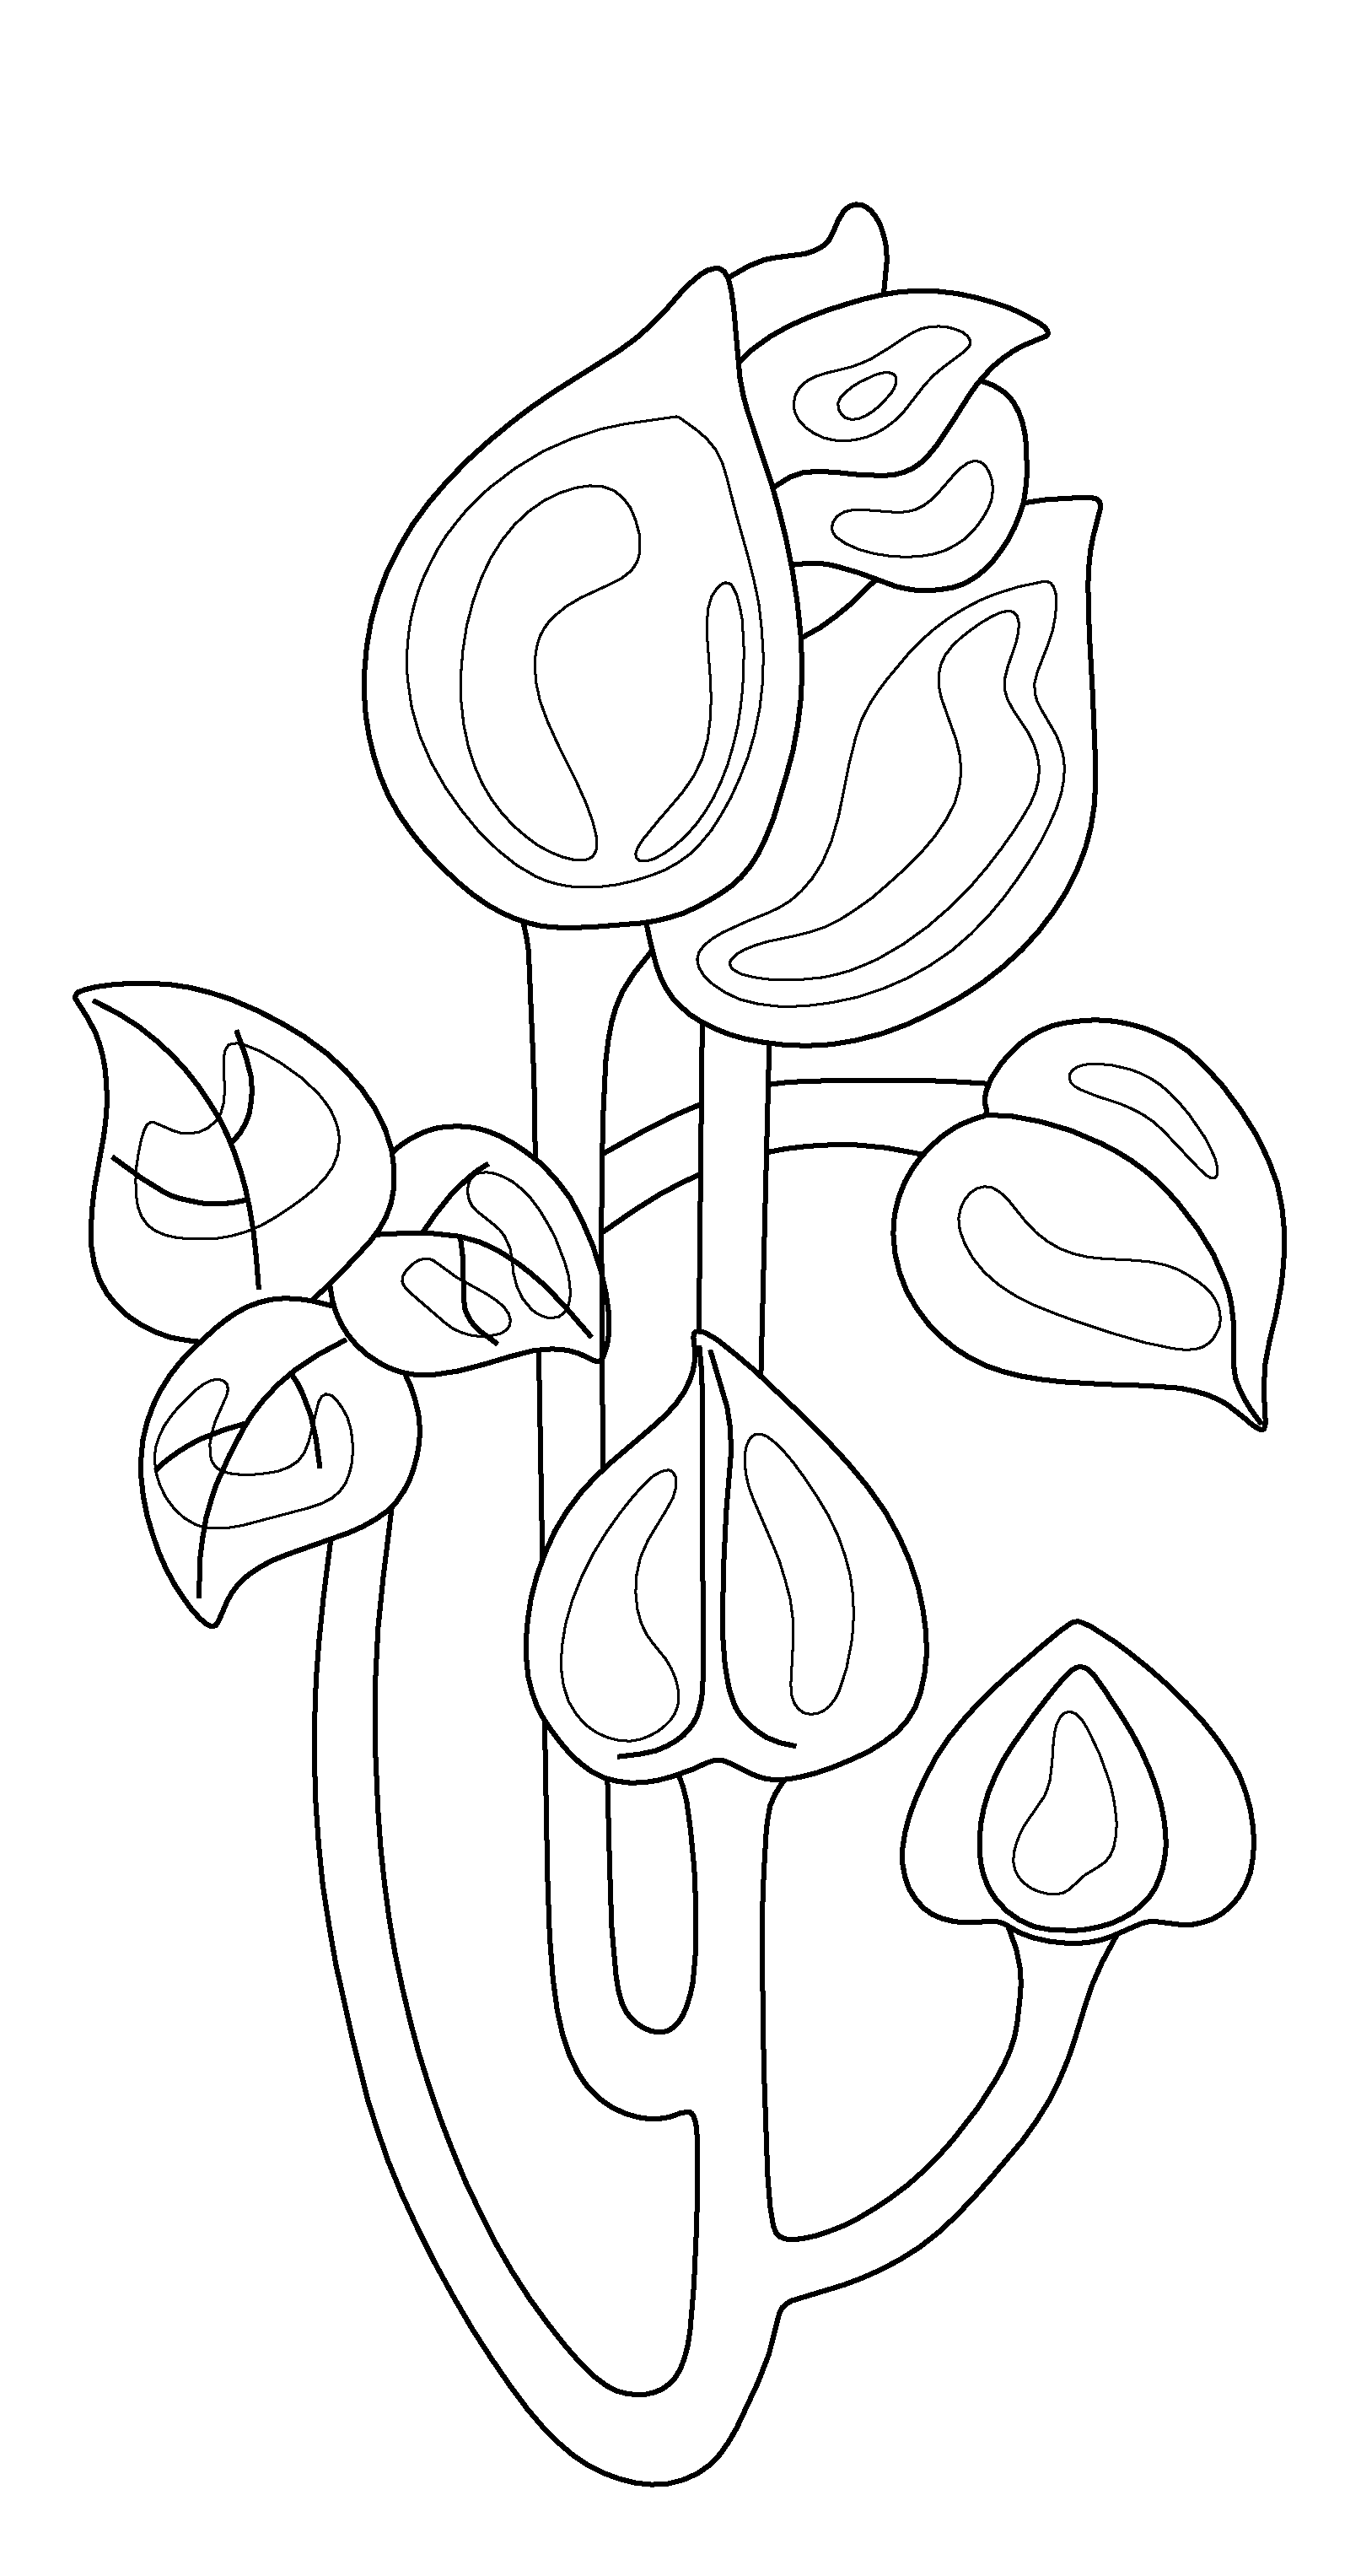 Tile drawing floral. Redrawn design flower ceramic